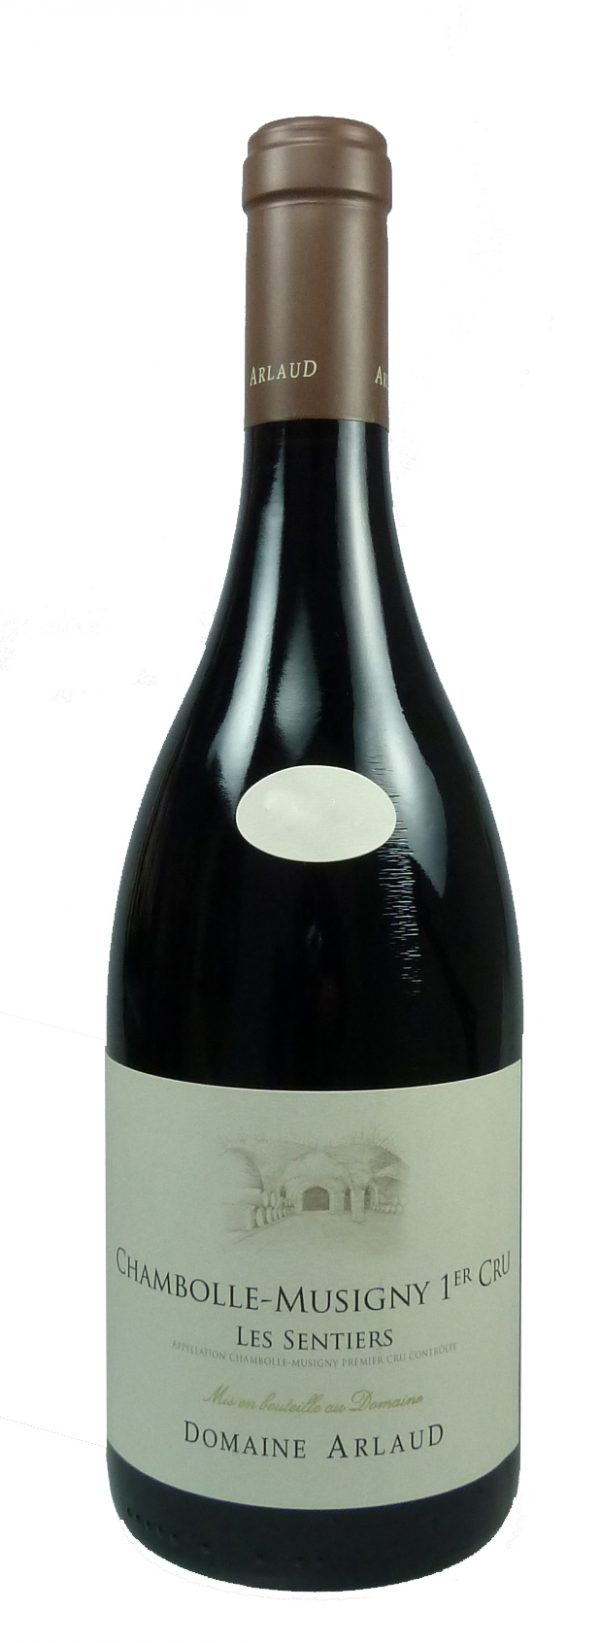 Chambolle-Musigny 1er Cru Les Sentiers 2017